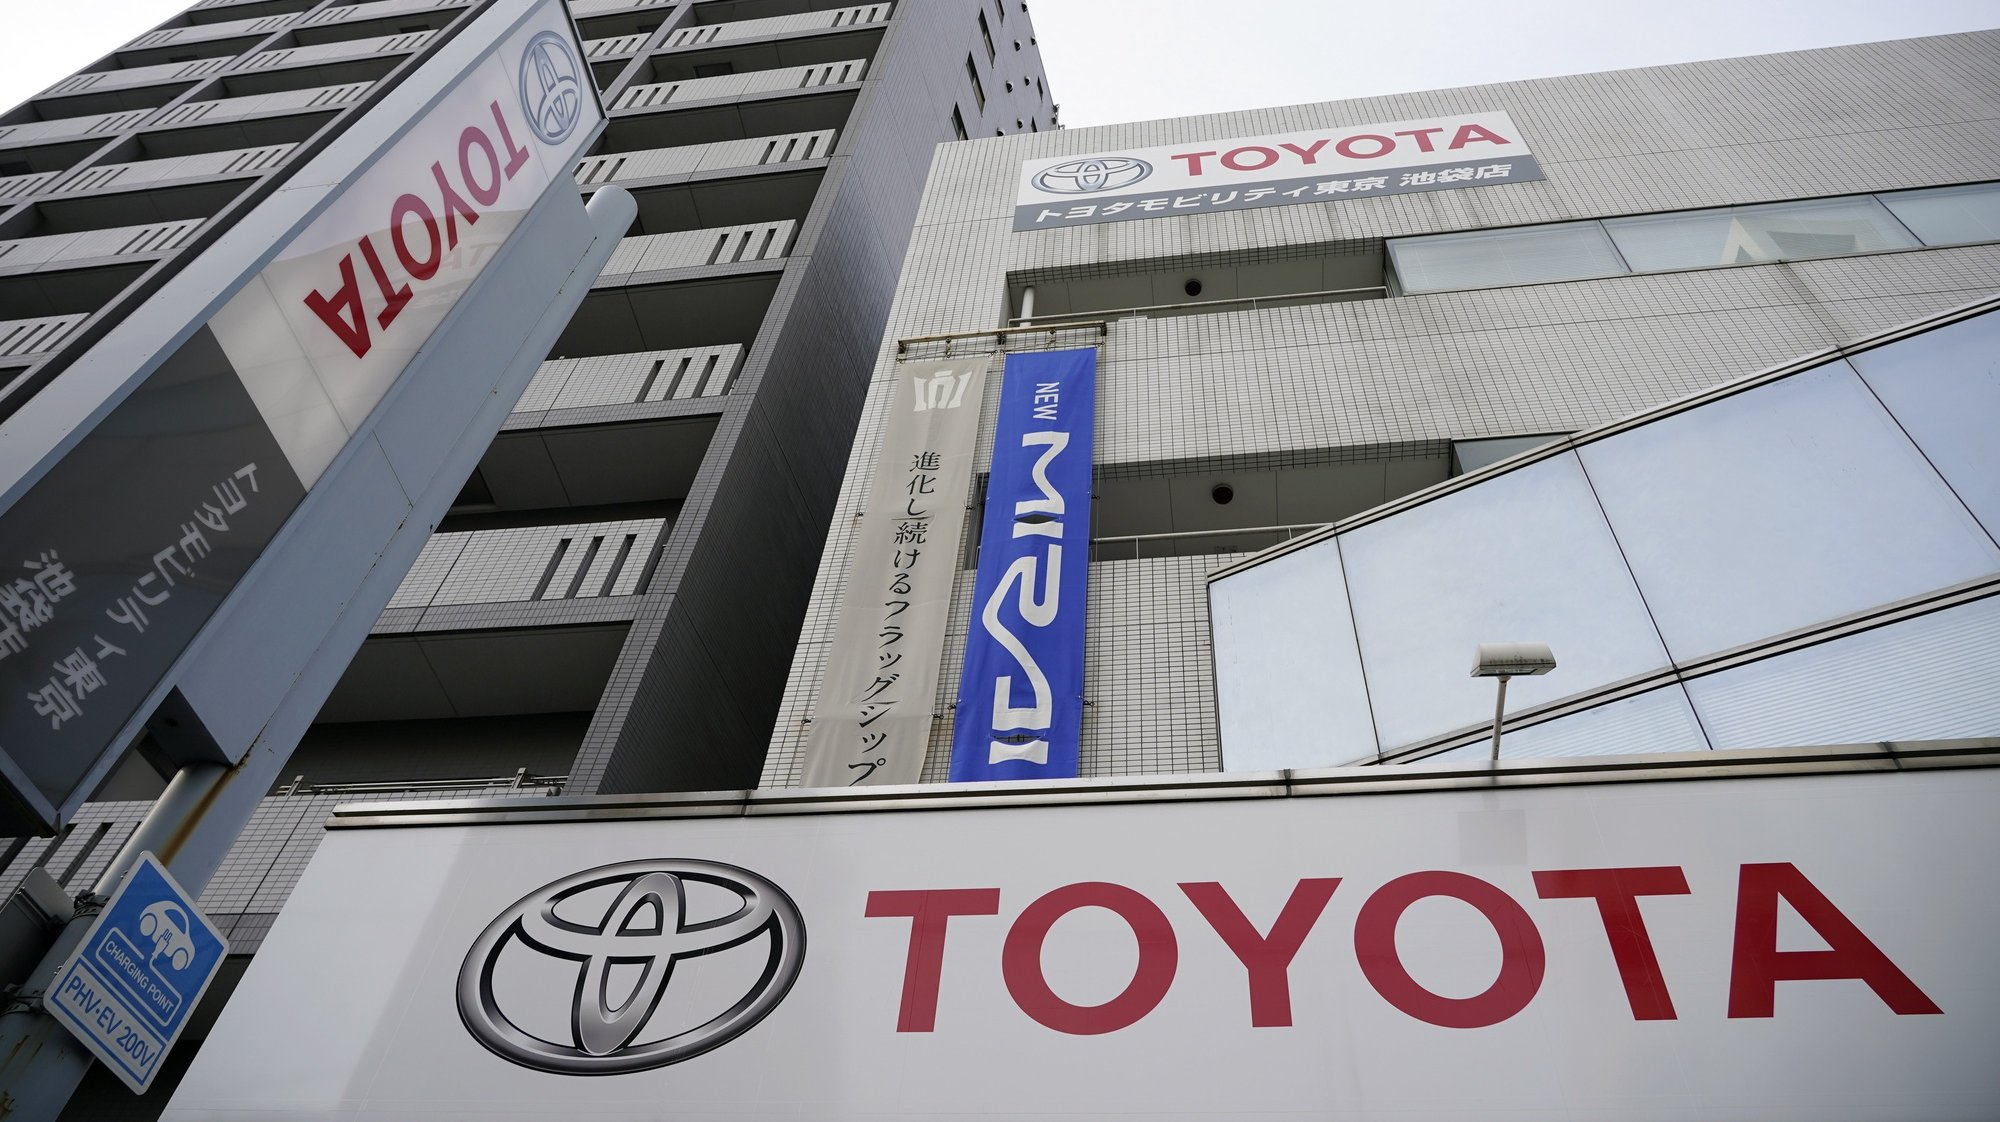 epa09000537 The Toyota Motor logo hangs outside the carmaker's retailer in Tokyo, Japan, 10 February 2021. Toyota Motor Corp. announced its financial forecast for the fiscal year 2021.  EPA/FRANCK ROBICHON